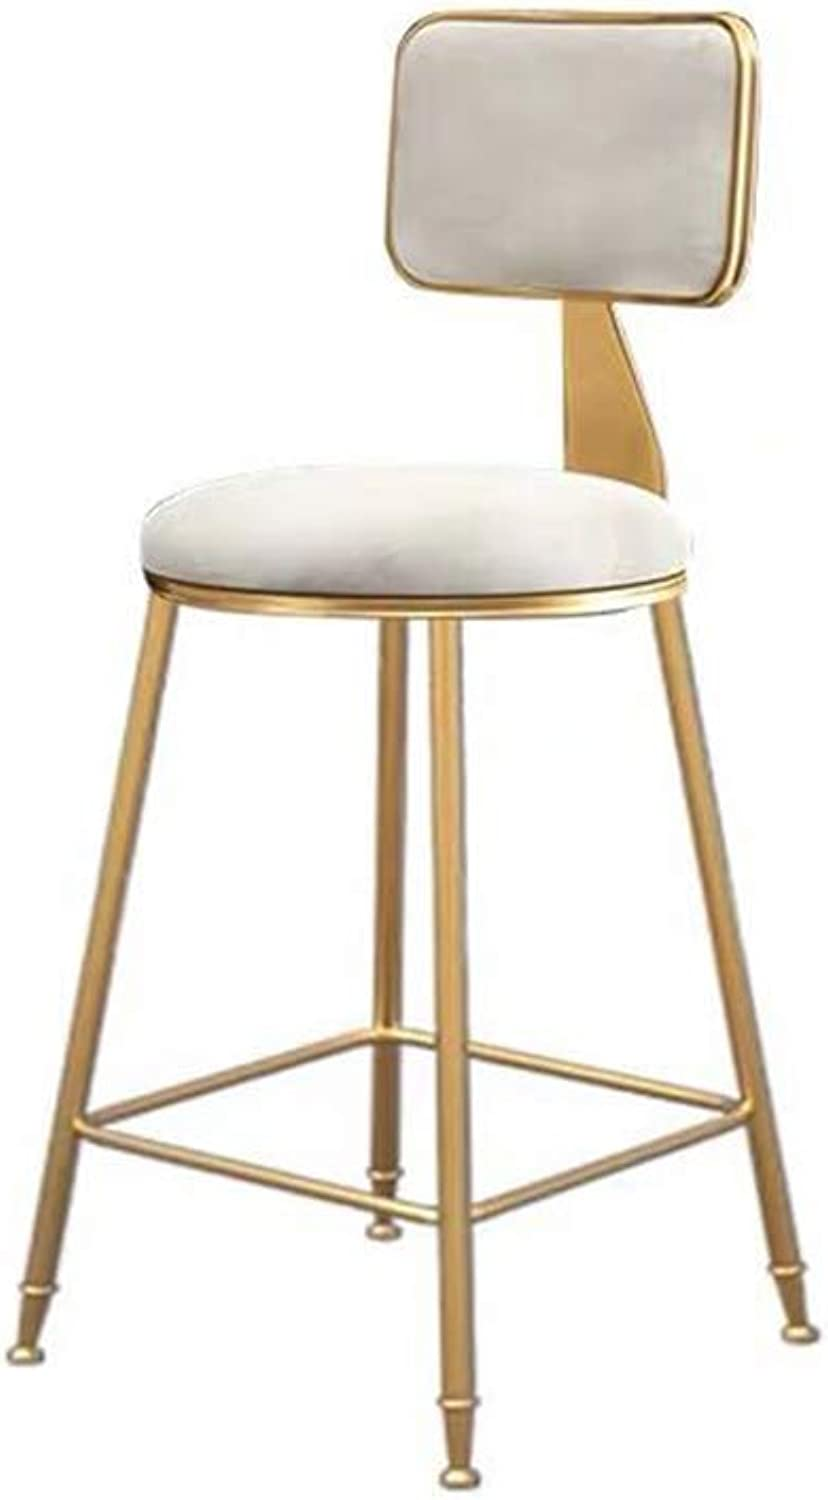 Barstools DOOST Stool bar Chair, gold Metal Leg Velvet seat, Padded Dining Chair bar Kitchen with backrest Bearing Weight 200kg